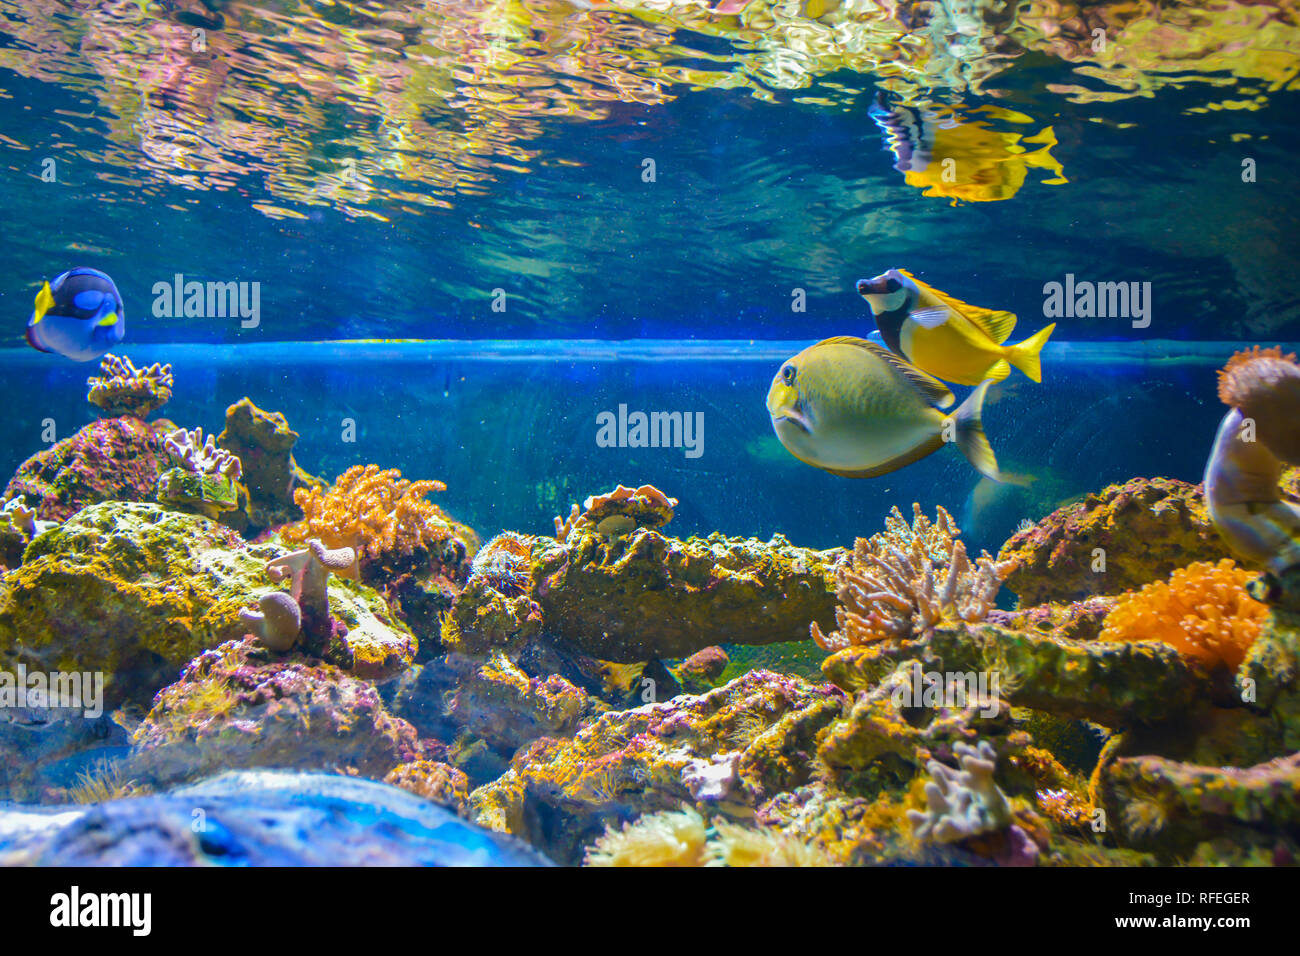 sch ne fische im aquarium unterwasser auf blauem hintergrund stockfoto bild 233274911 alamy. Black Bedroom Furniture Sets. Home Design Ideas